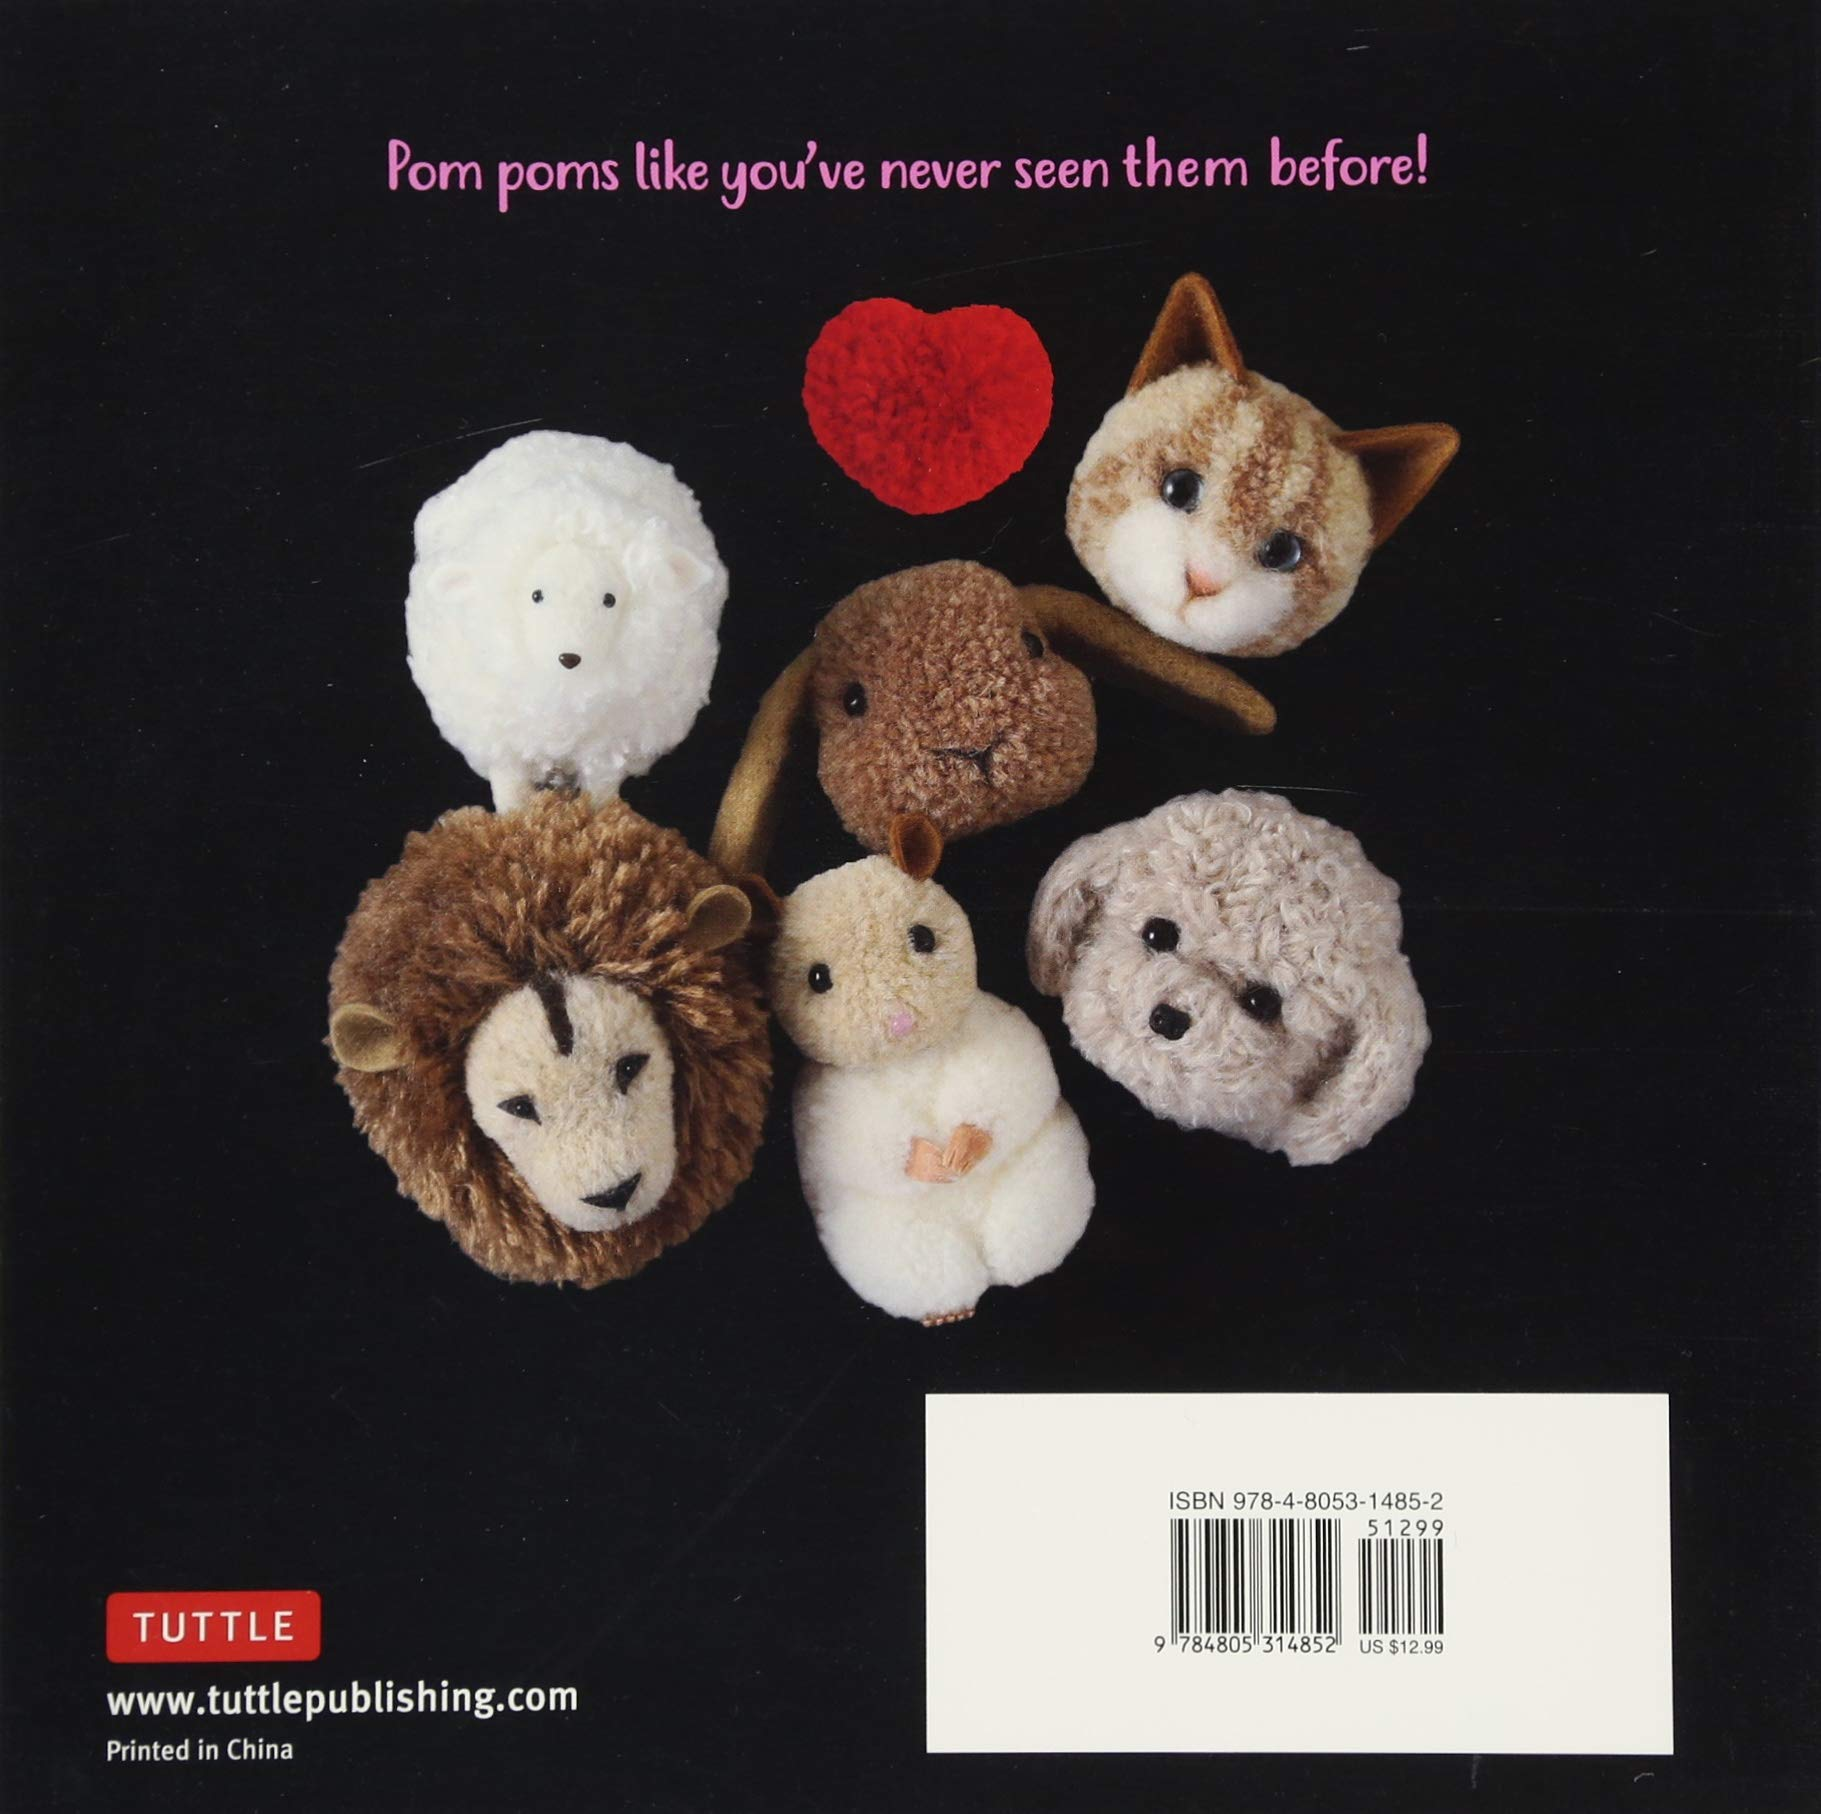 Adorable Pom Pom Animals: Dogs, Cats and Other Woolly Friends by Tuttle Publishing (Image #3)